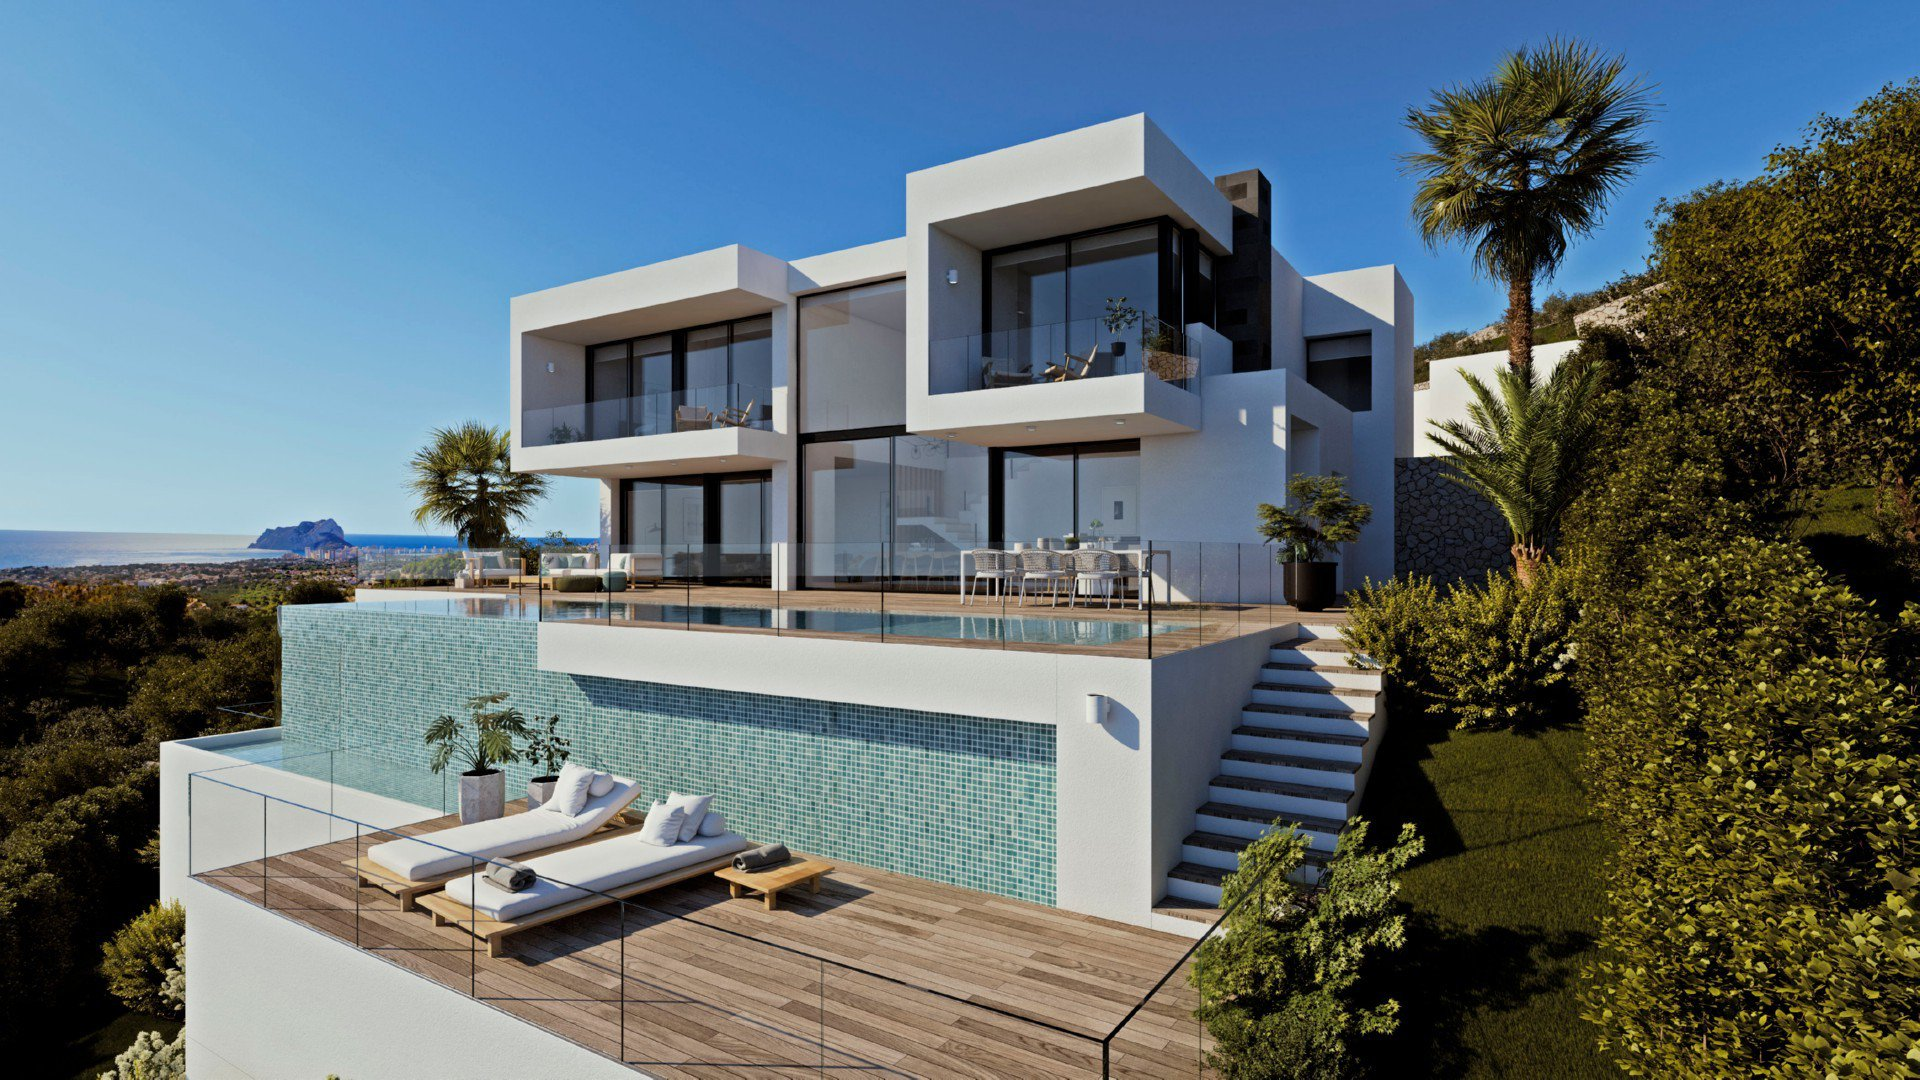 Exclusive and modern villa with panoramic sea views